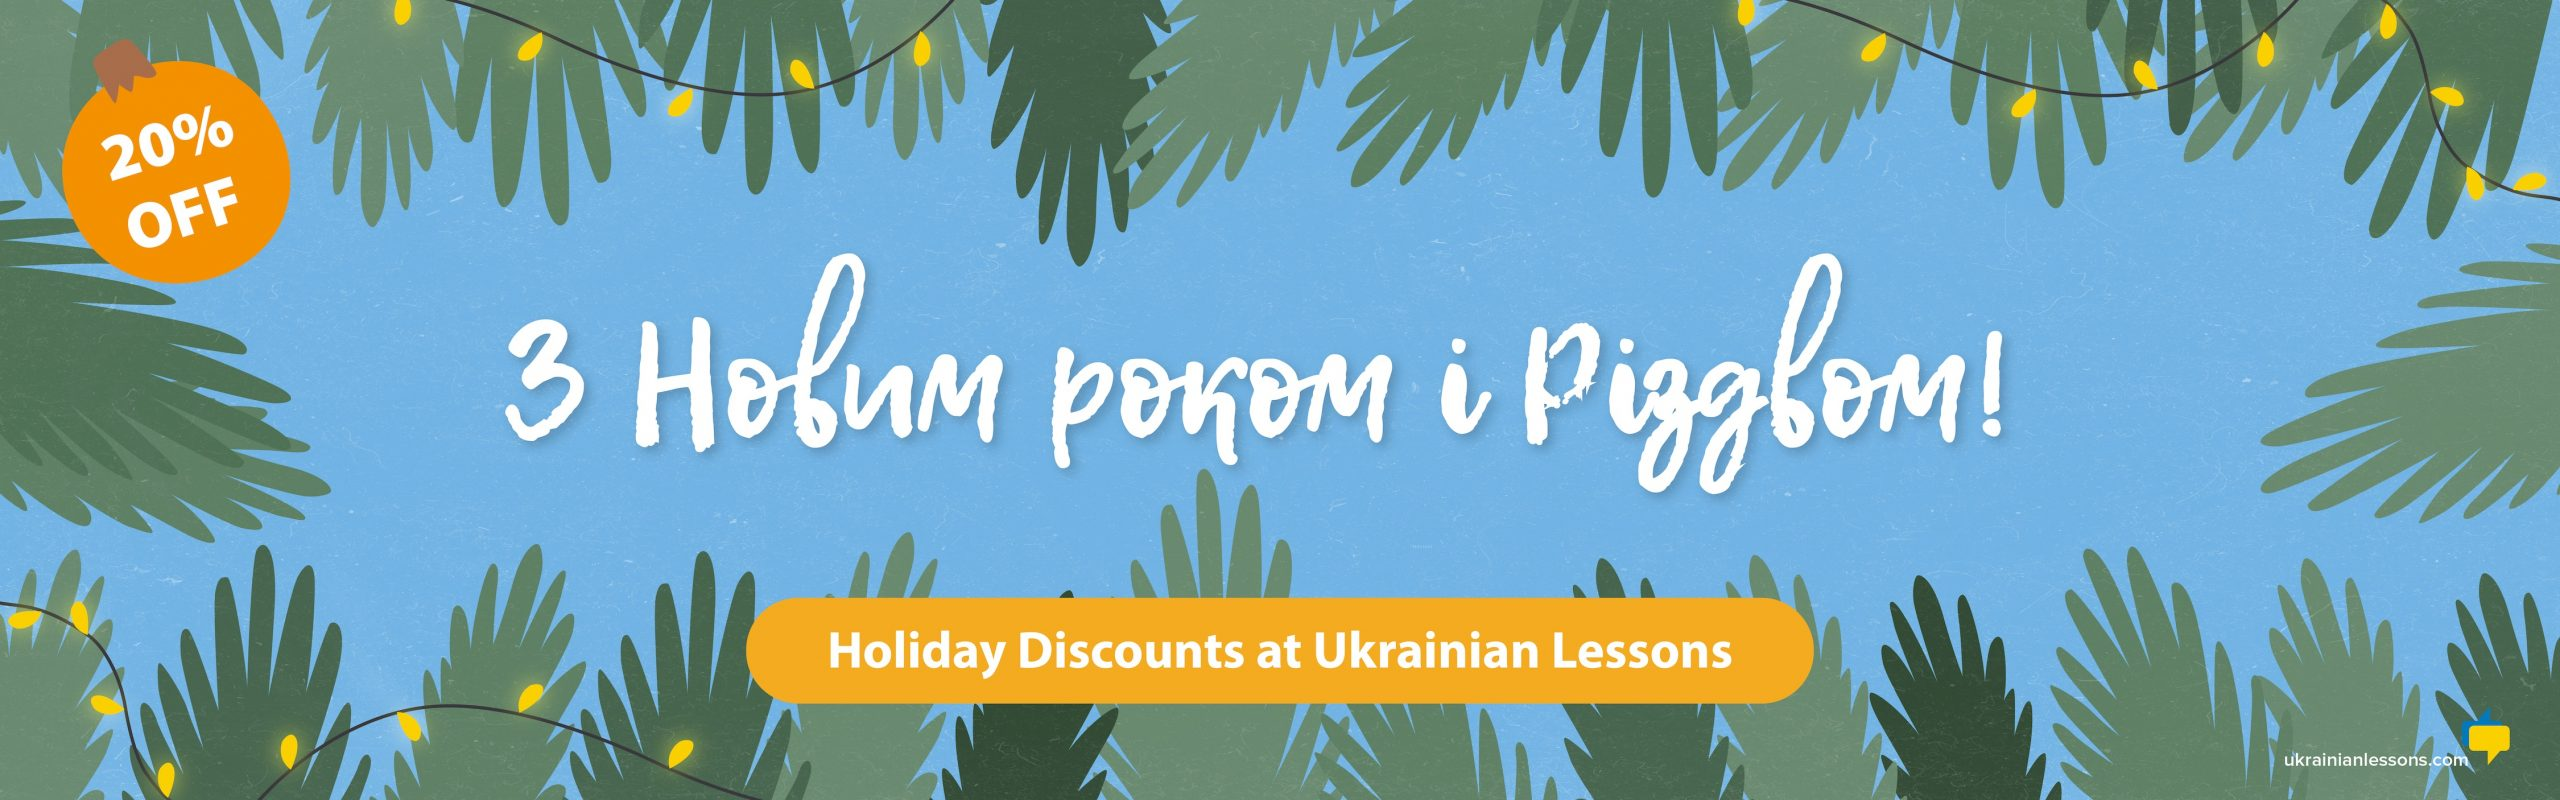 Ukrainian LEssons discounts